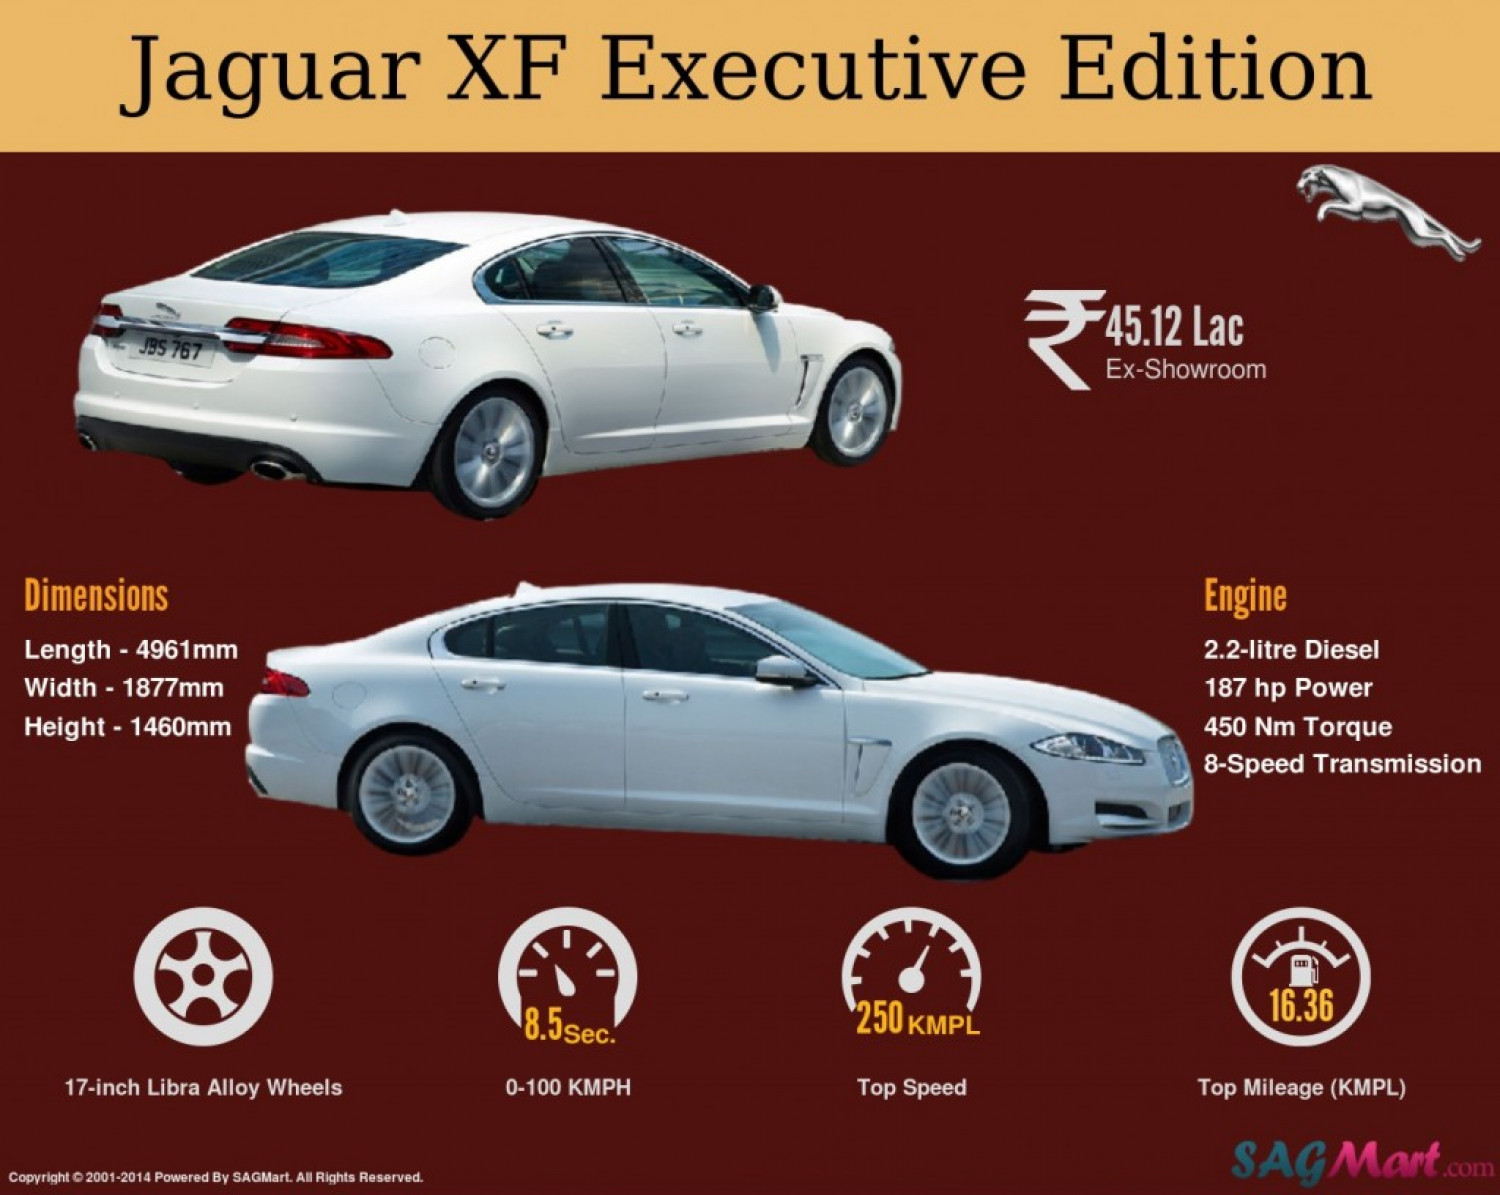 Jaguar XF Executive Edition Specifications and Price Infographic